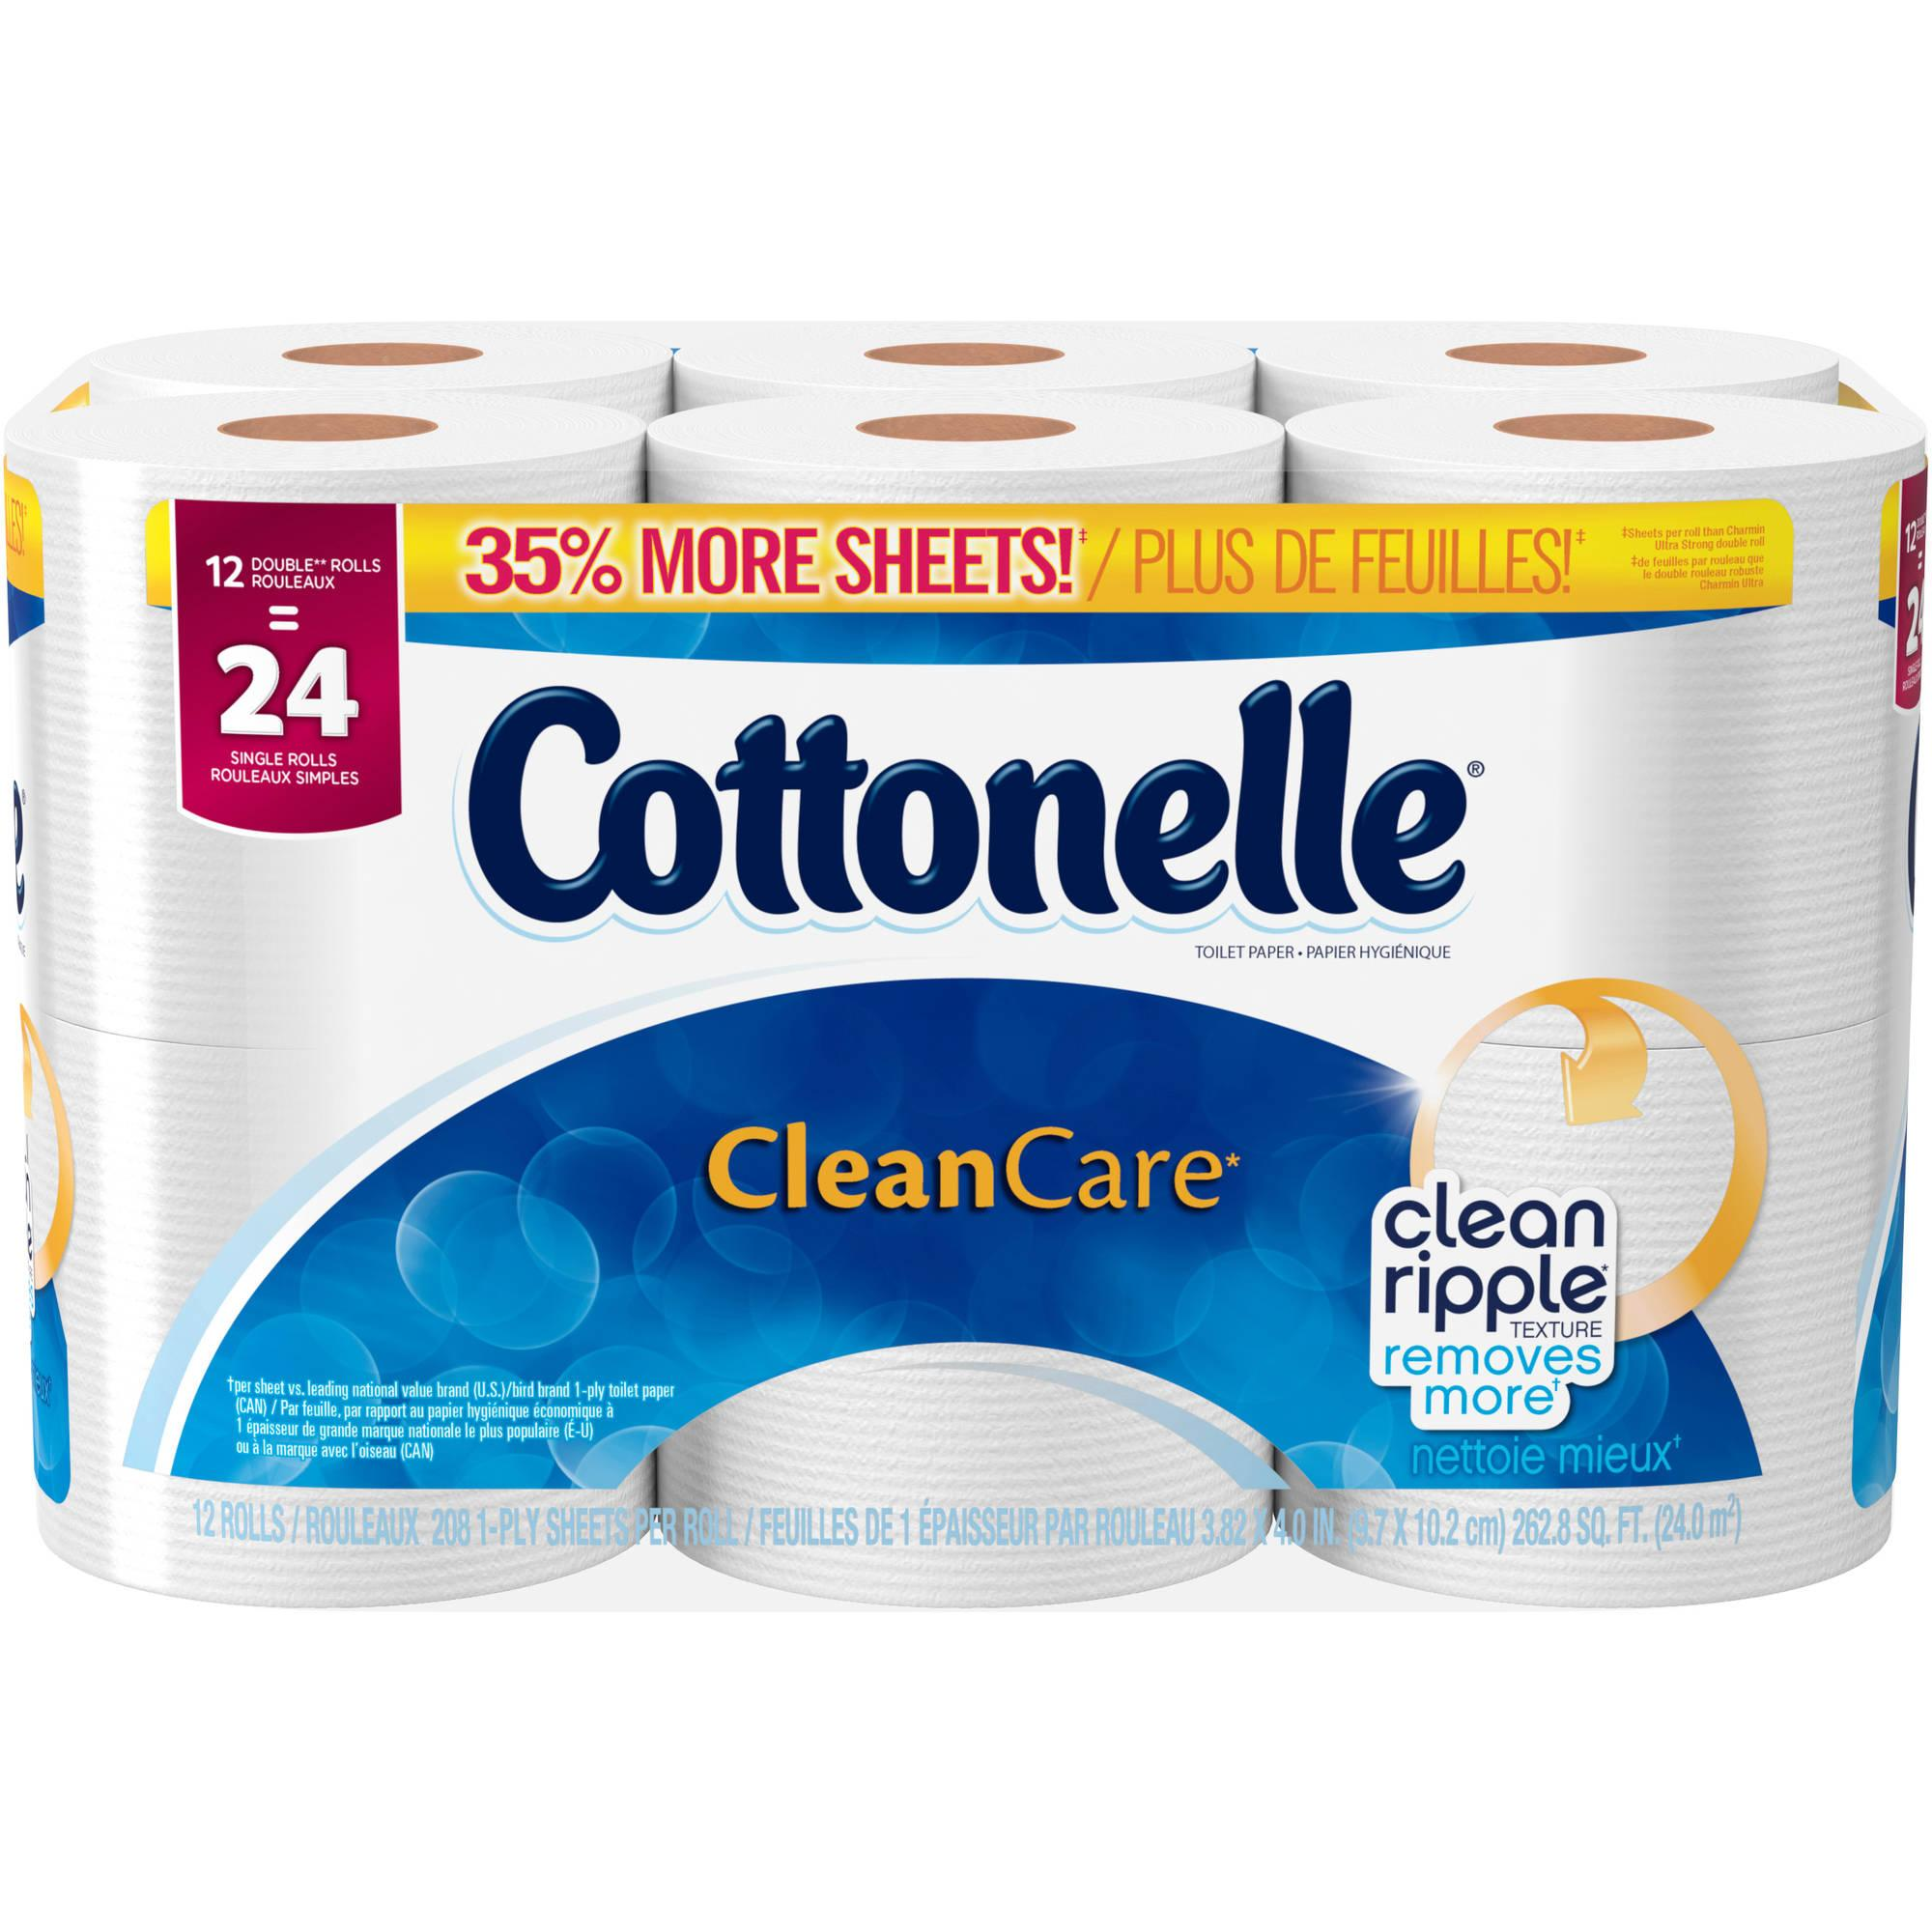 Followers, Following, 1, Posts - See Instagram photos and videos from CottonelleMx (@cottonellemx).